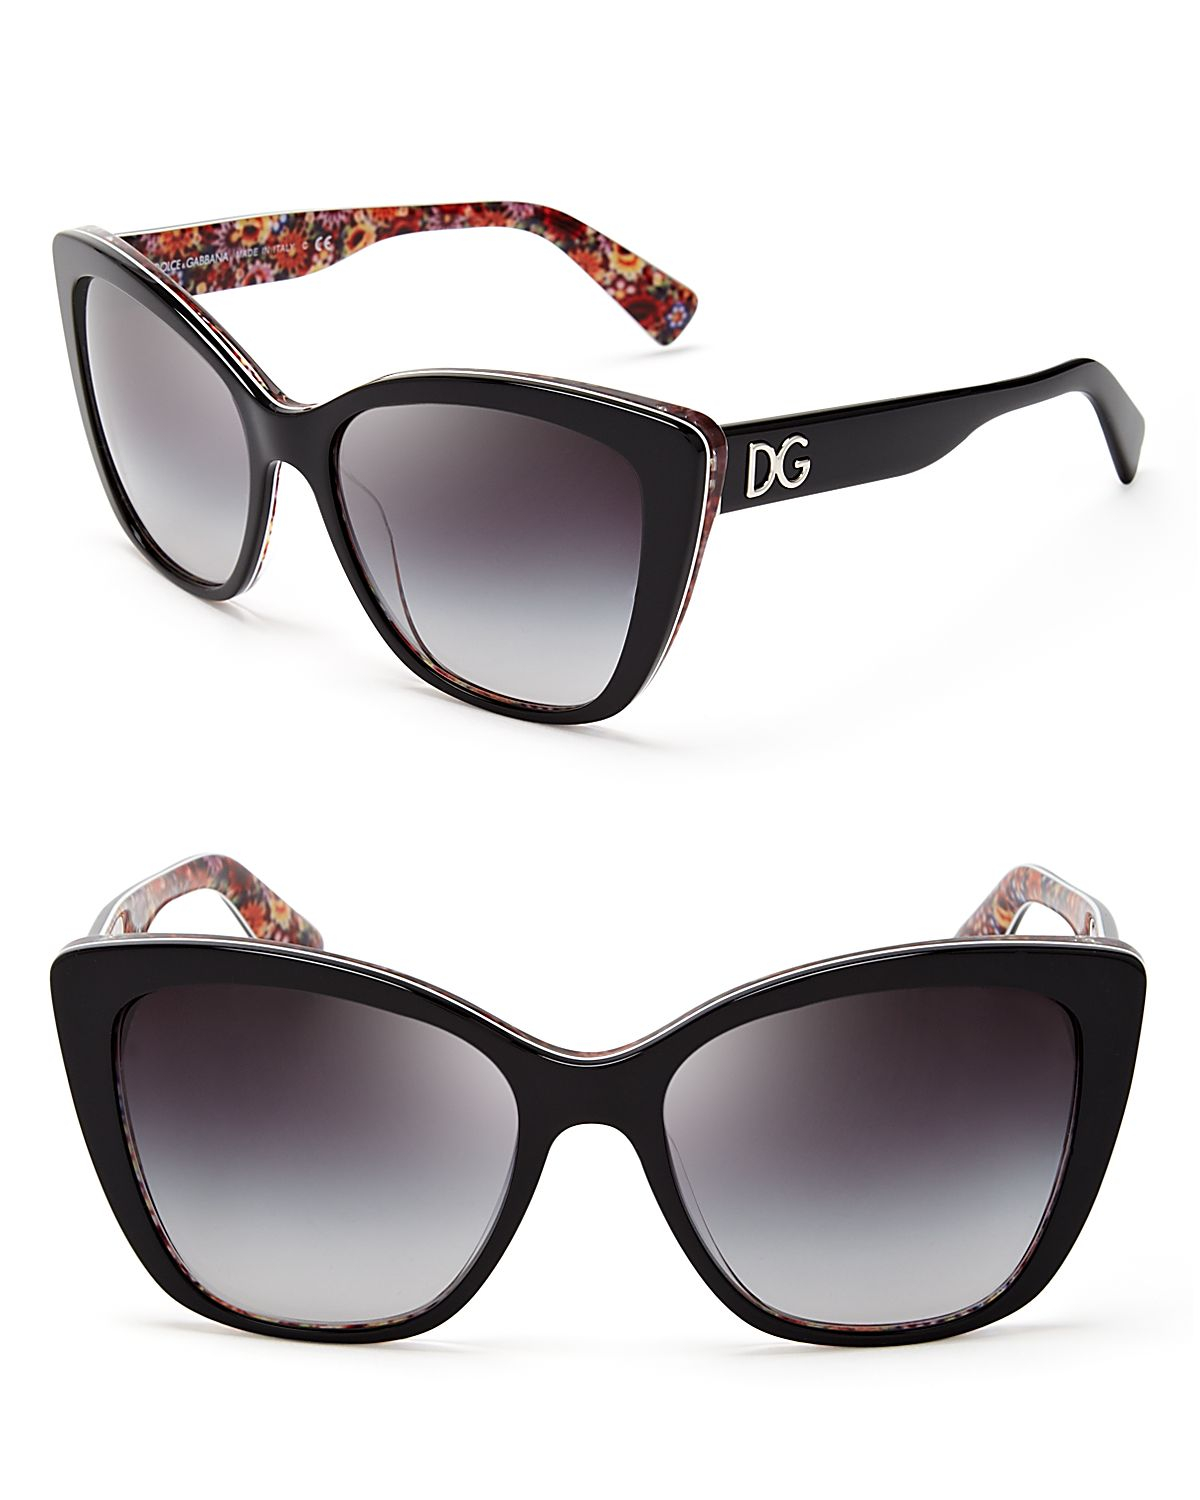 293fb6465910 Dolce   Gabbana Mosaic Cat Eye Sunglasses in Black - Lyst